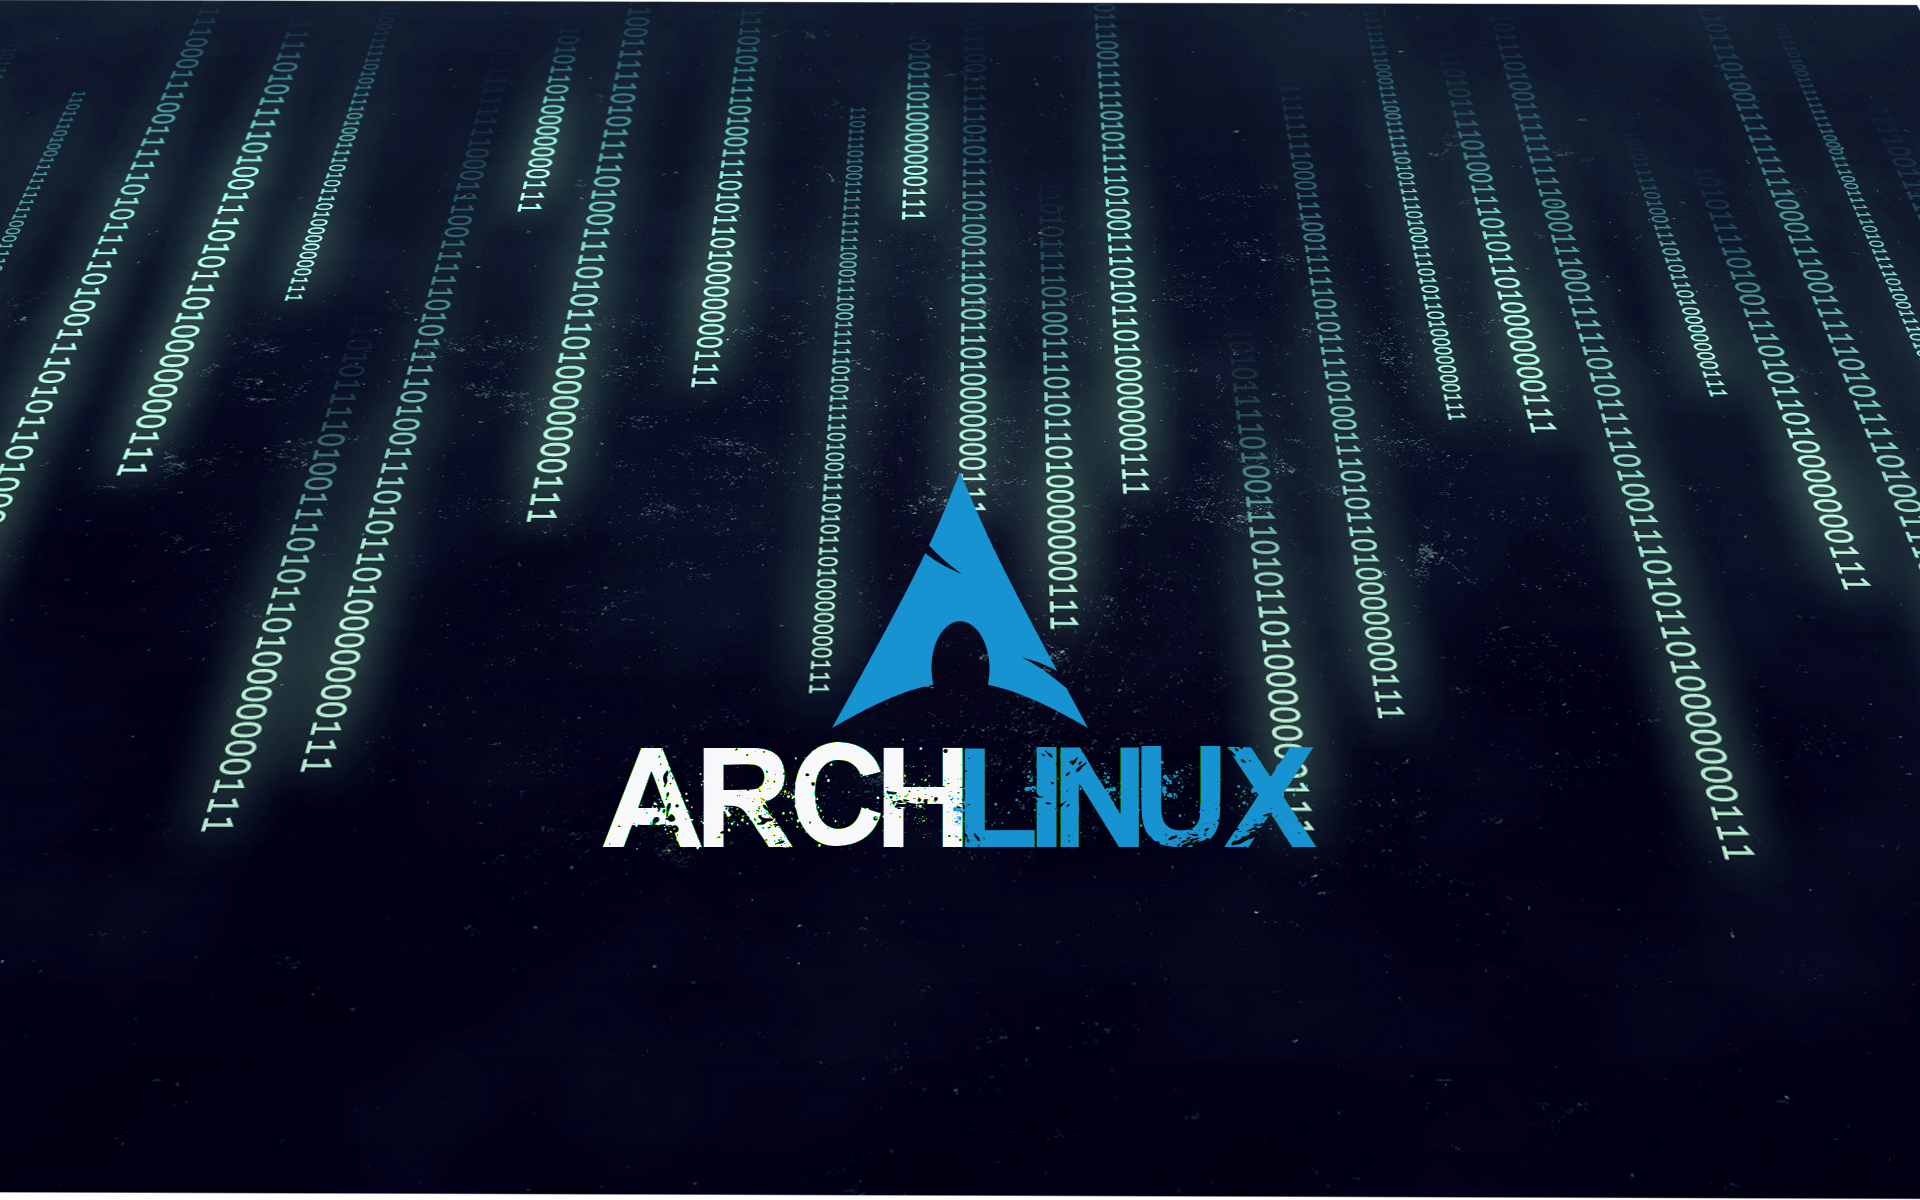 Arch Linux Wallpaper X 3d Php Backgrounds Bow